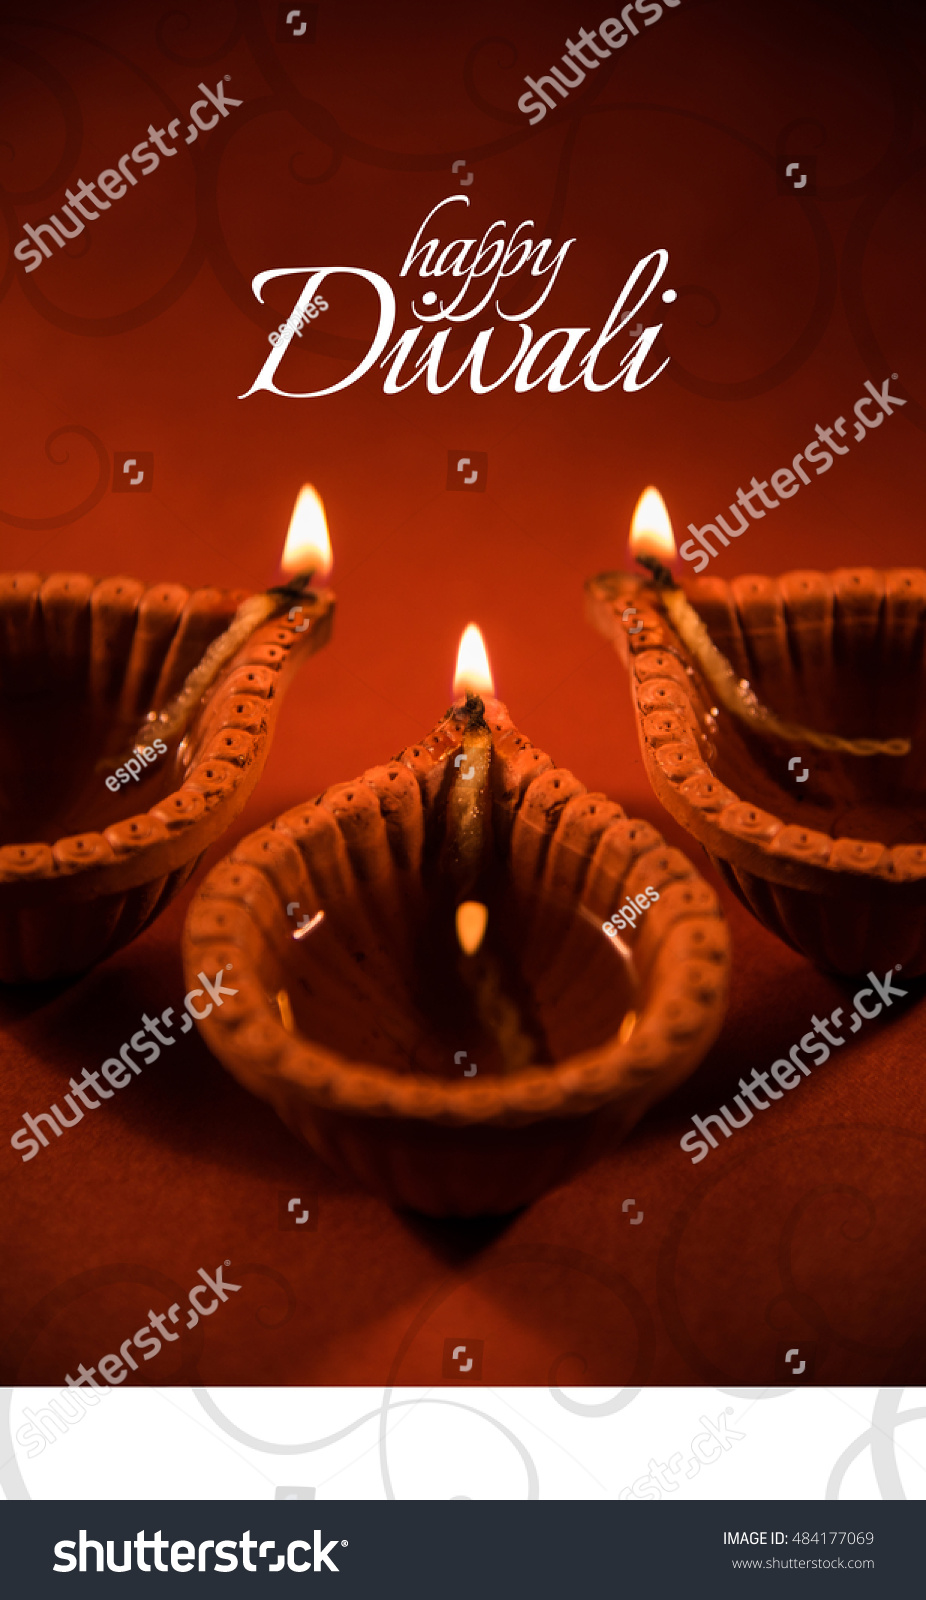 Happy Diwali Happy Deepavali Greeting Card Stock Photo Royalty Free